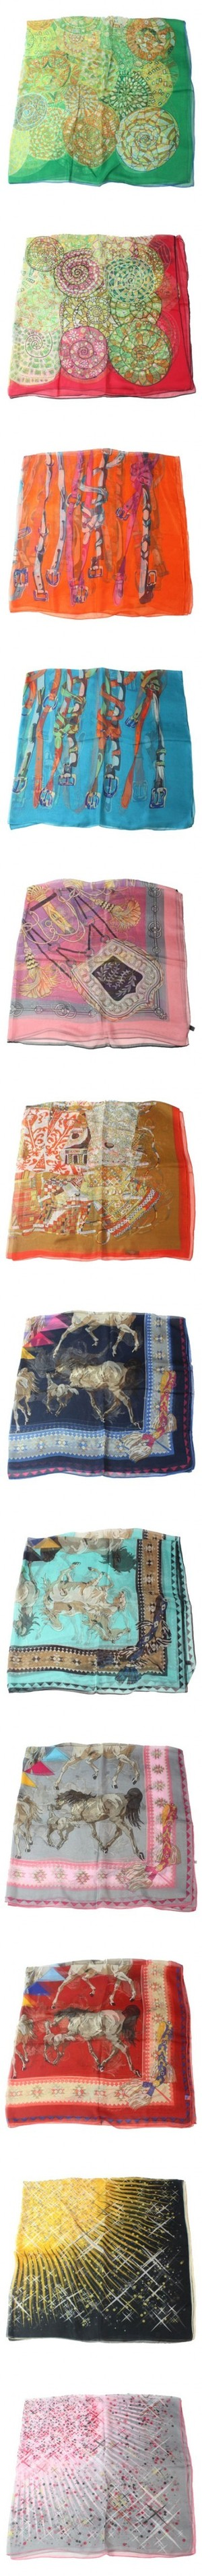 """2012 Vintage Hermes Silk Scarves New Collection"" by shoeswithredsoles on Polyvore"